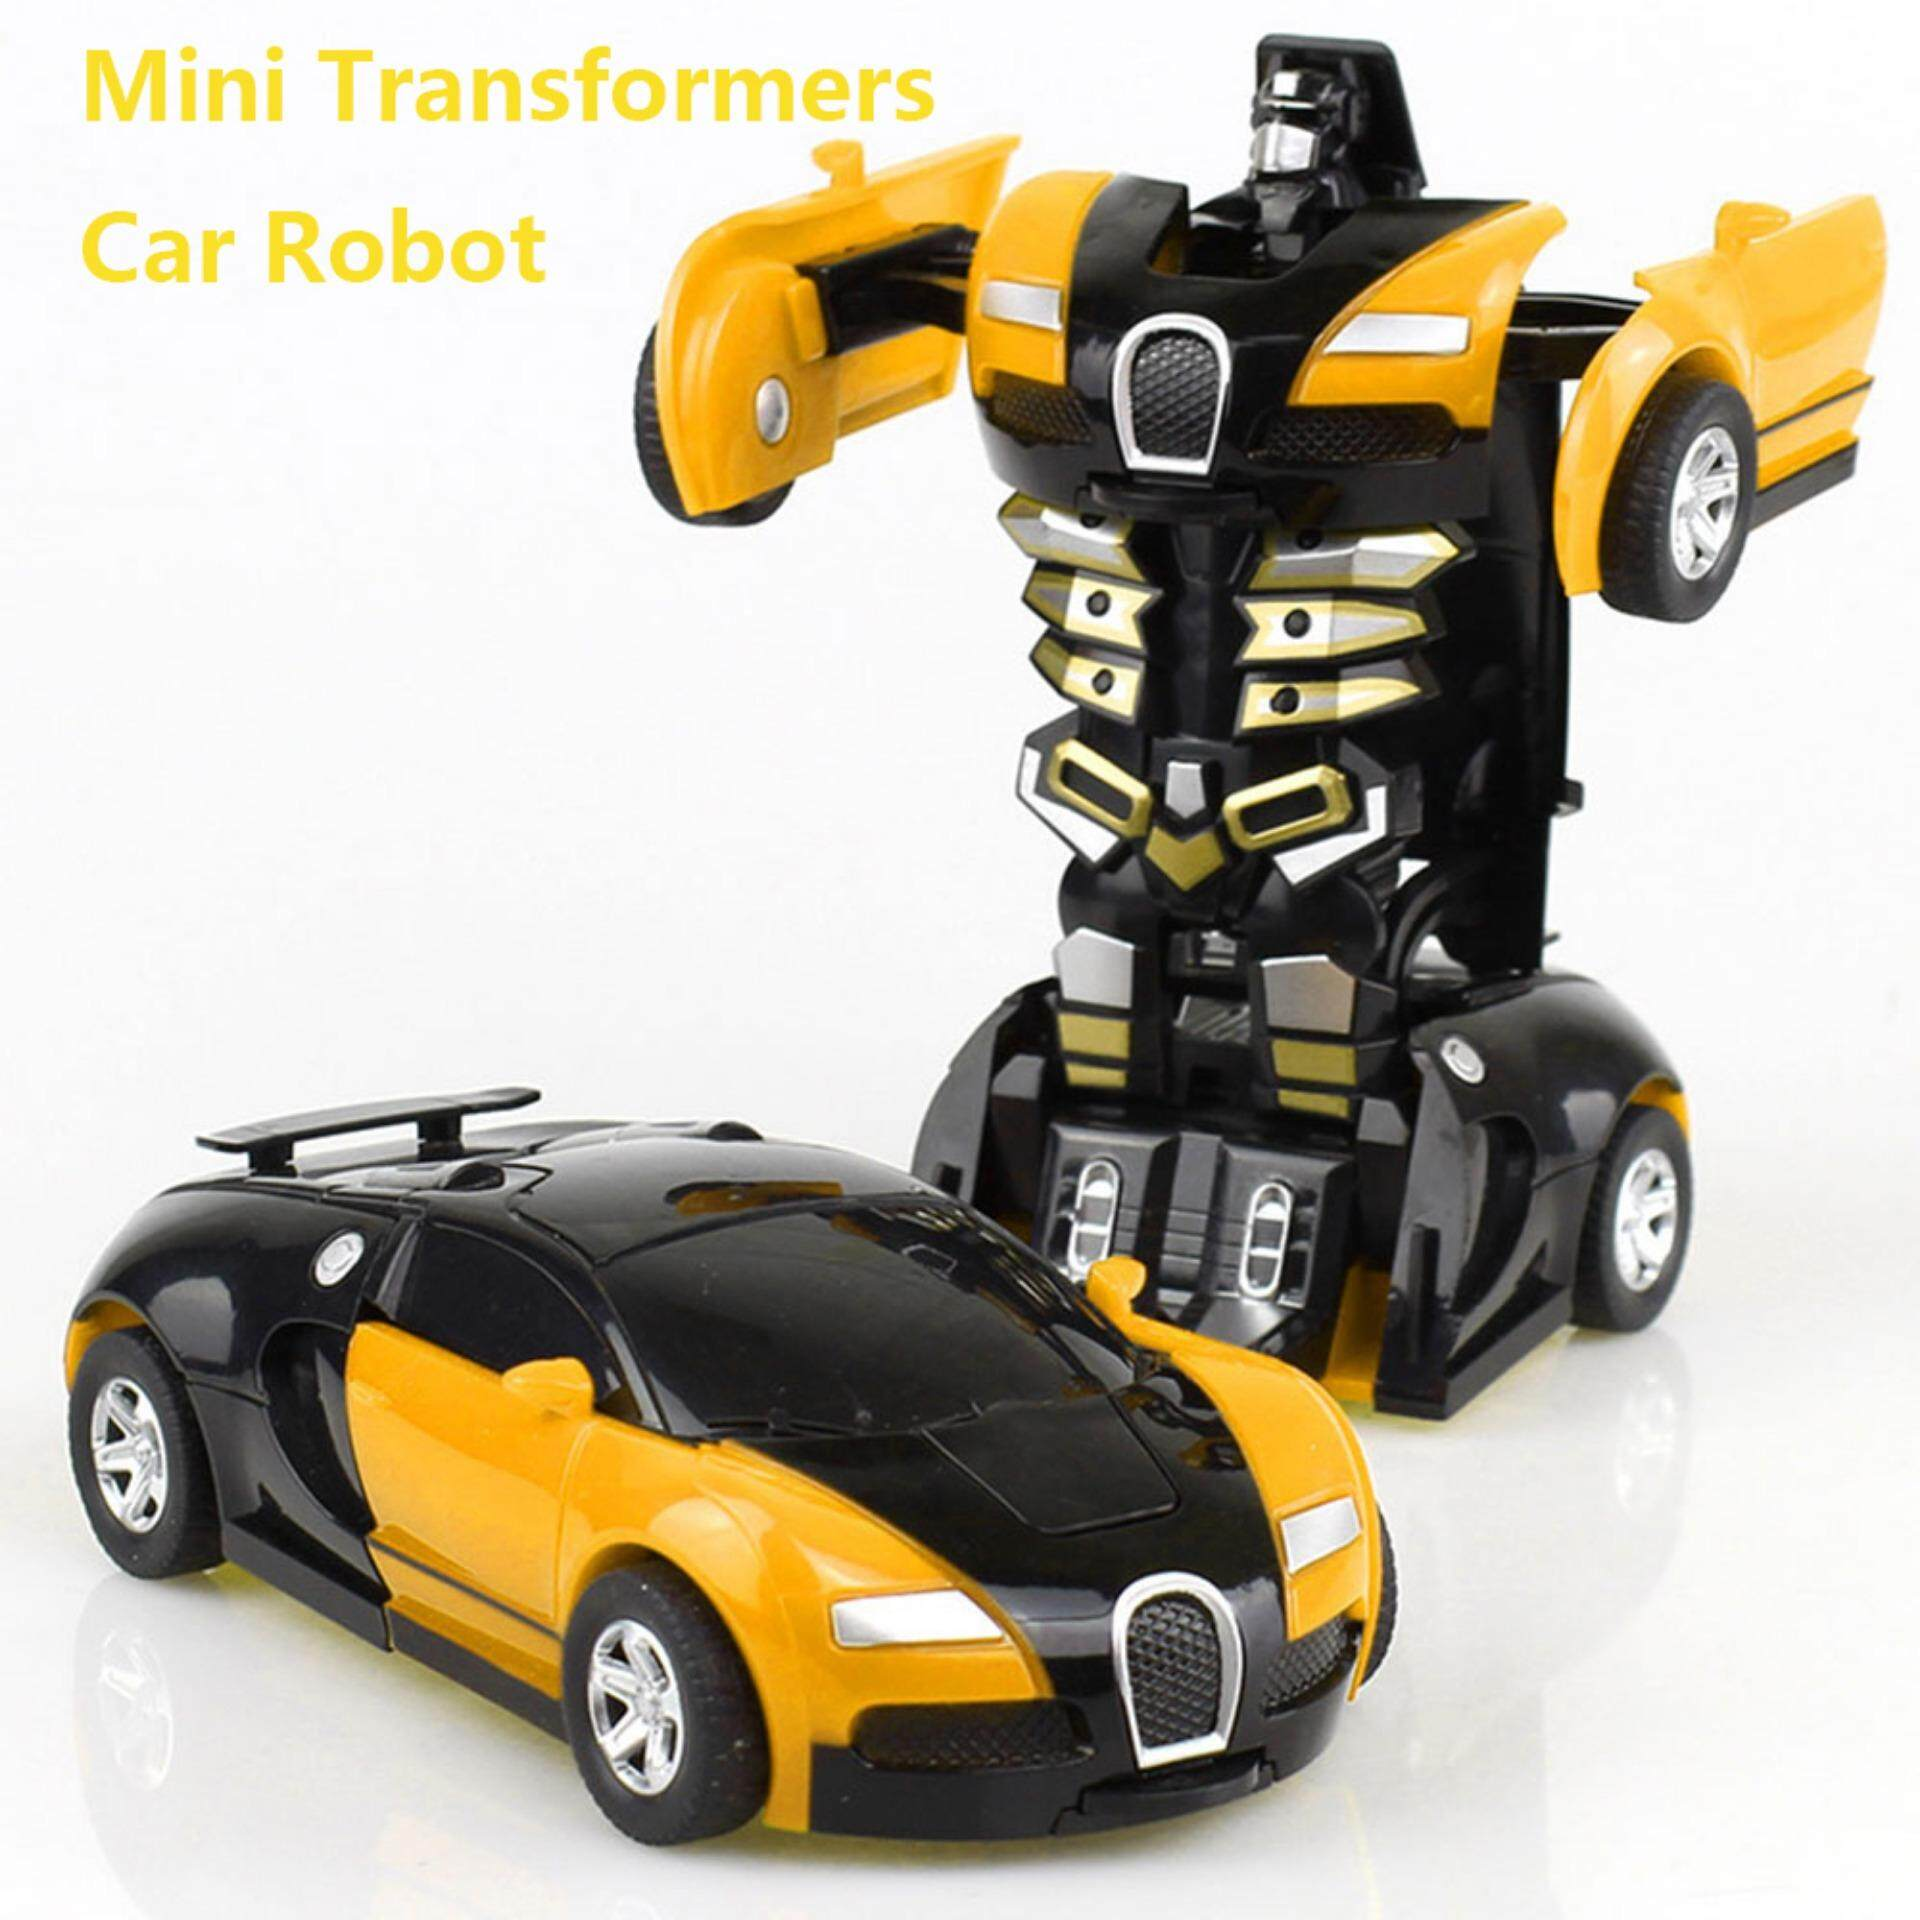 Gambar Toko Kecil Kobwa Transformers Car Rescue Bots Deformation Transformer Car One Step Car Robot Vehicle Model Action Figures Toy Transform Car For Kids